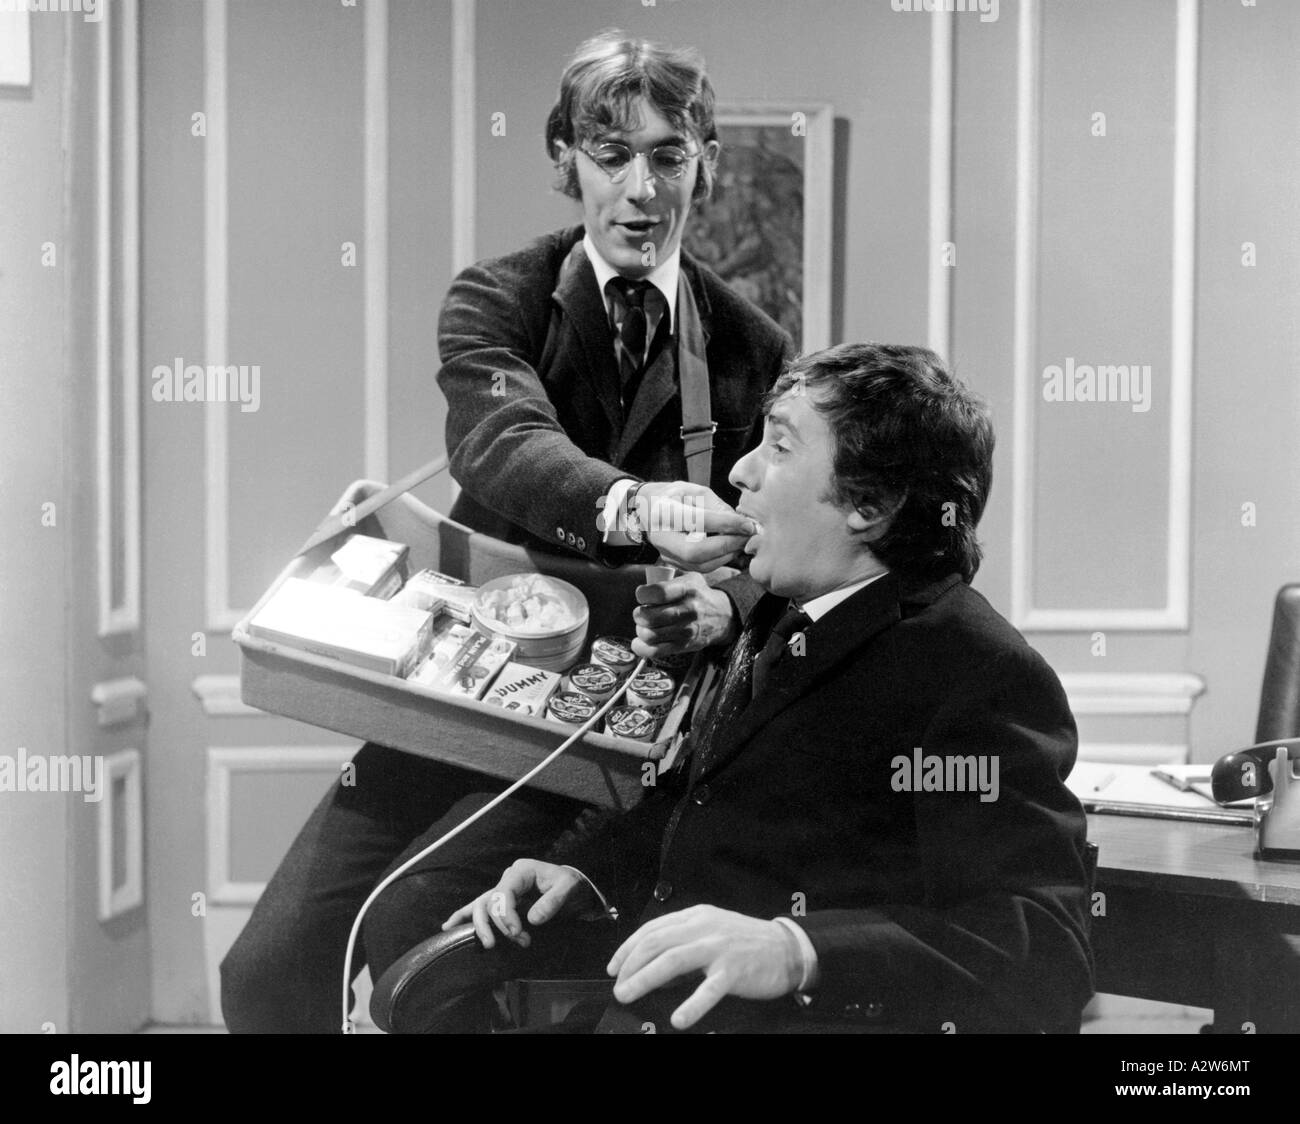 PETER COOK left and Dudley Moore - UK comedians on their TV show in 1968 - Stock Image